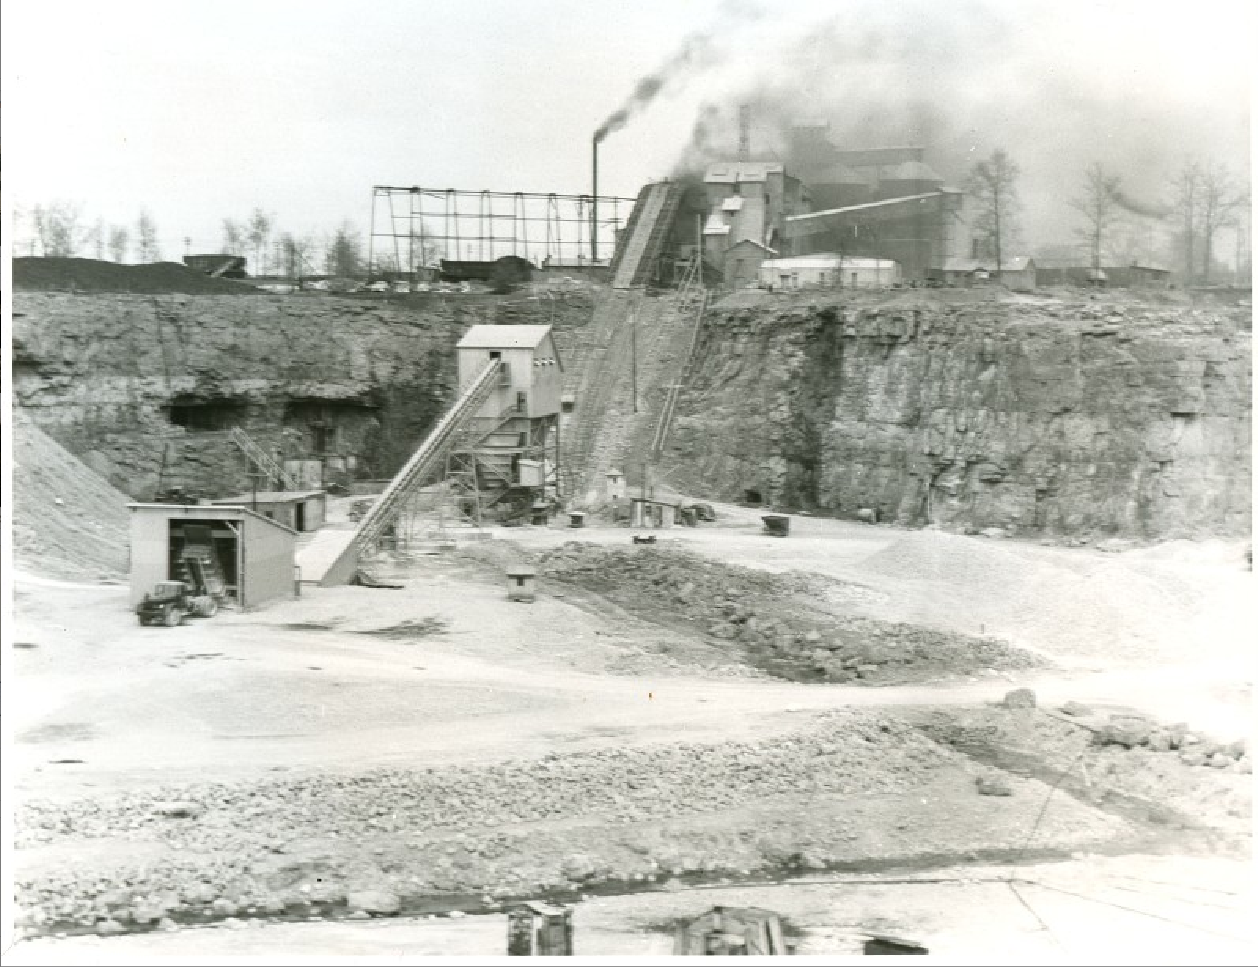 Luckey Quarry, May 4, 1951 by Fred Chambers